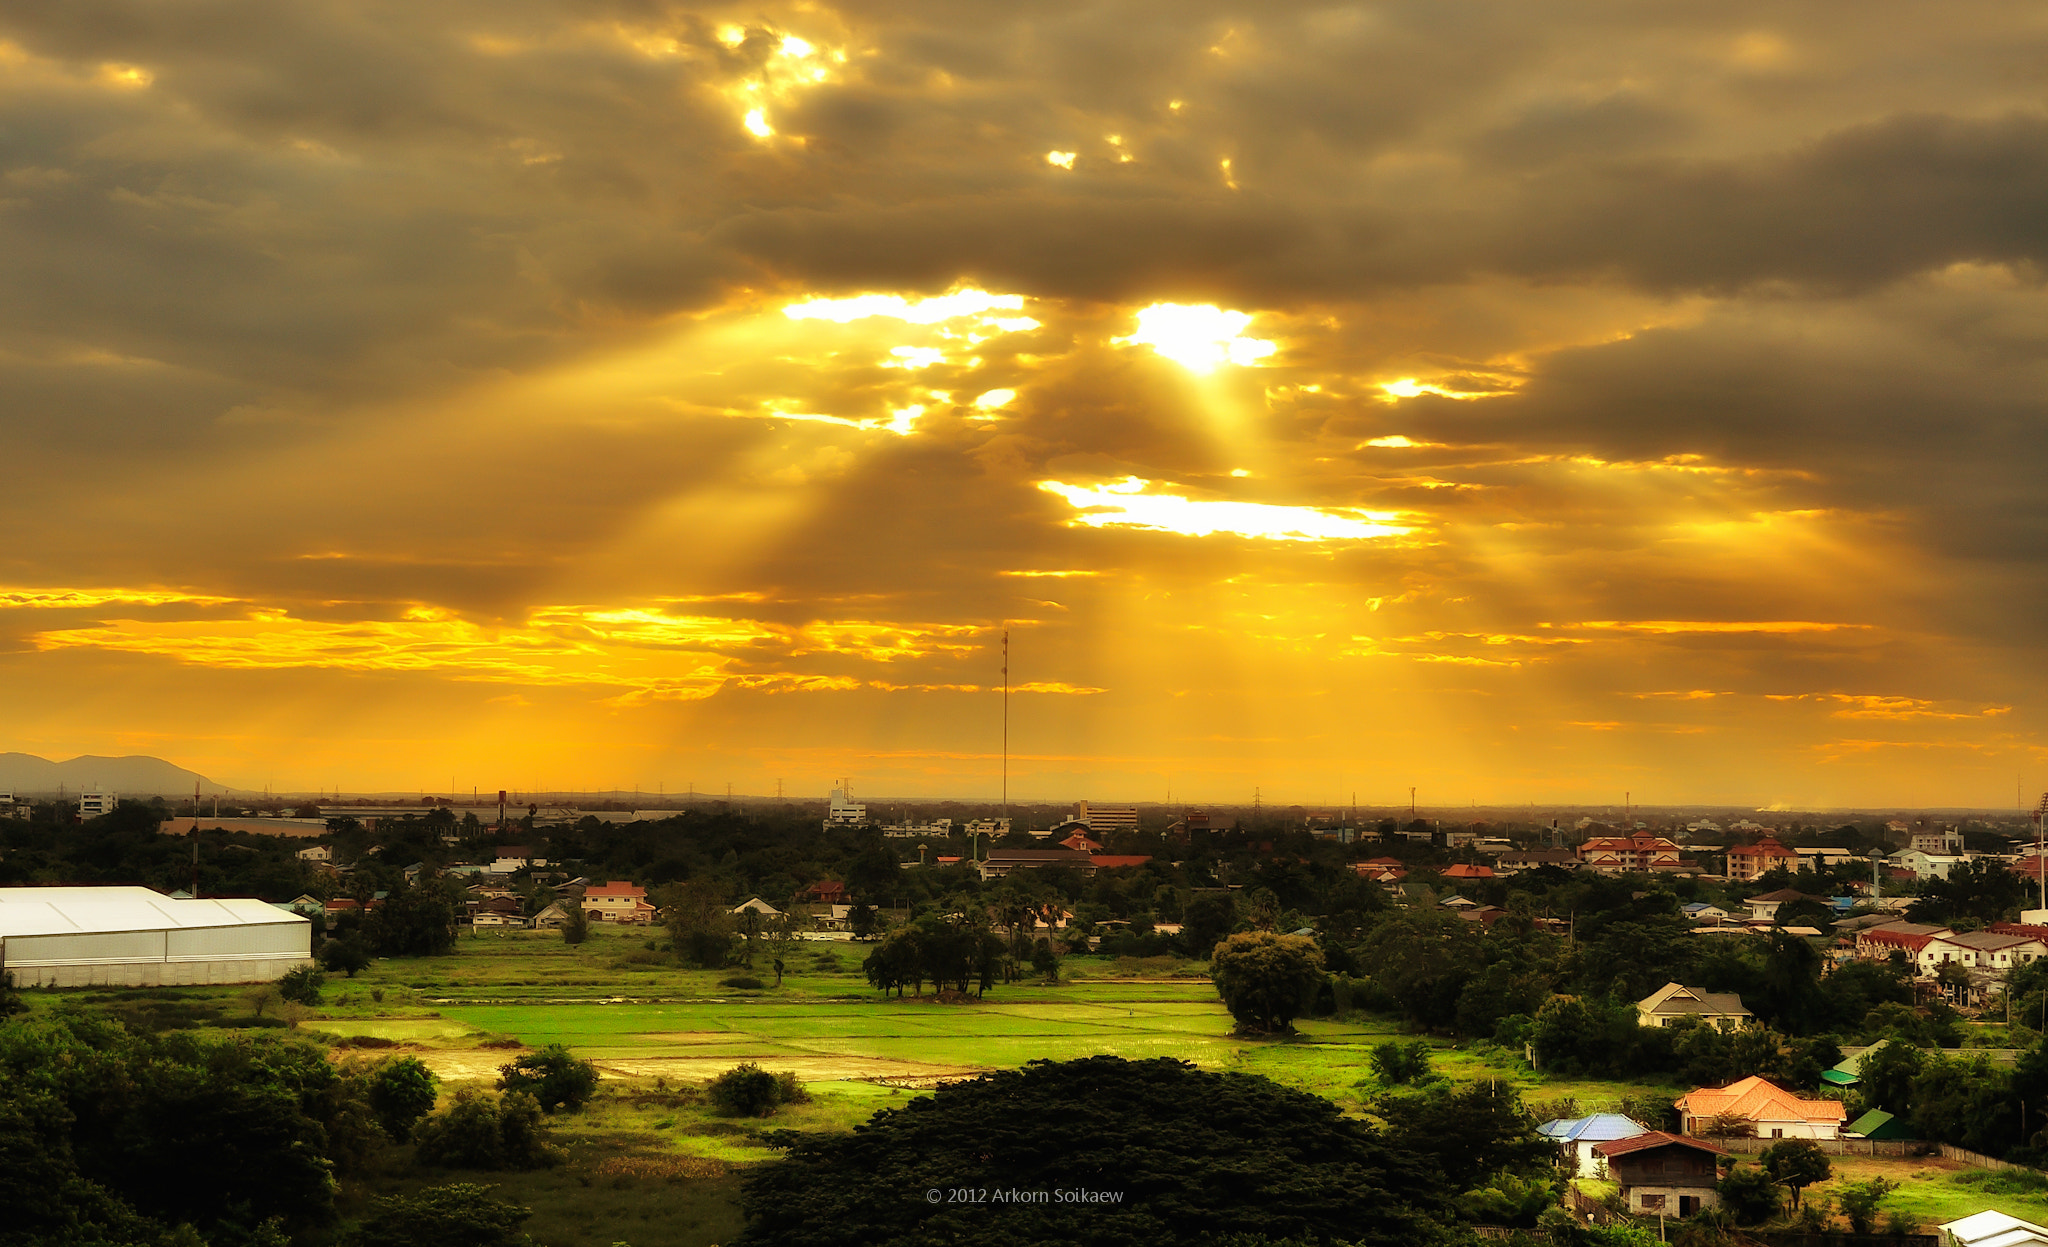 Photograph Crepuscular Ray by Arkorn Soikaew on 500px